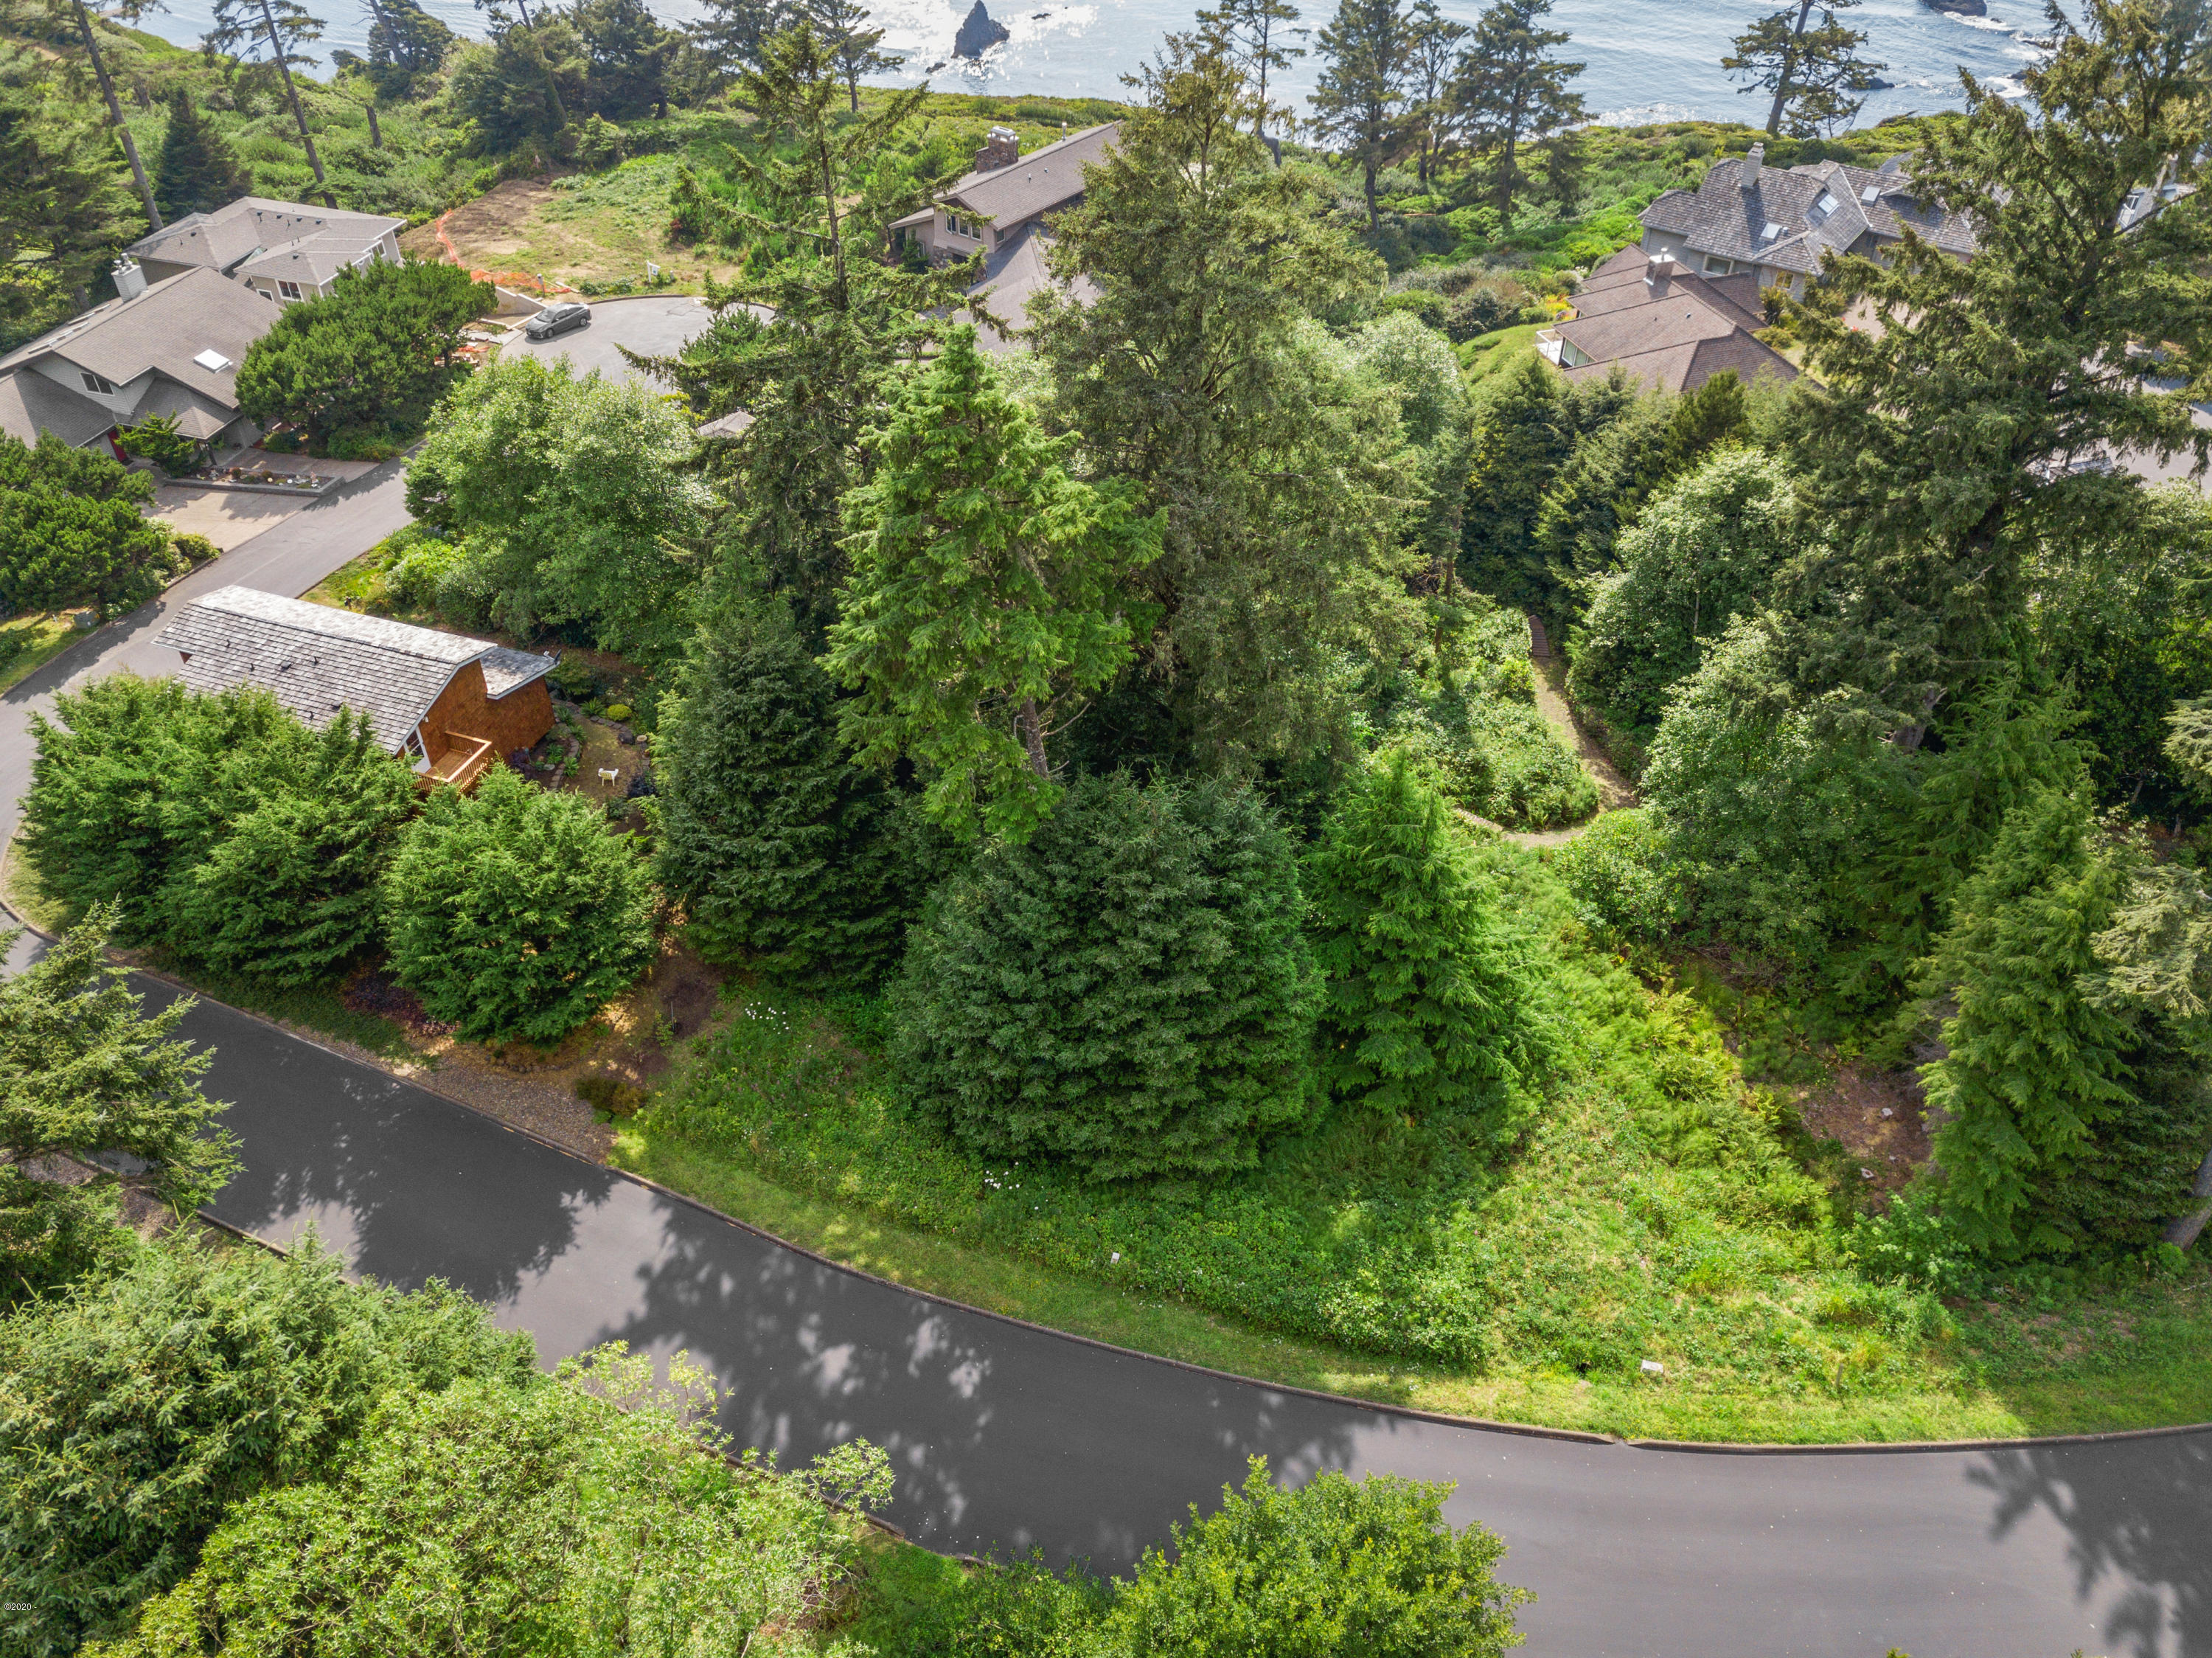 29 Sea Crest Way, Otter Rock, OR 97369